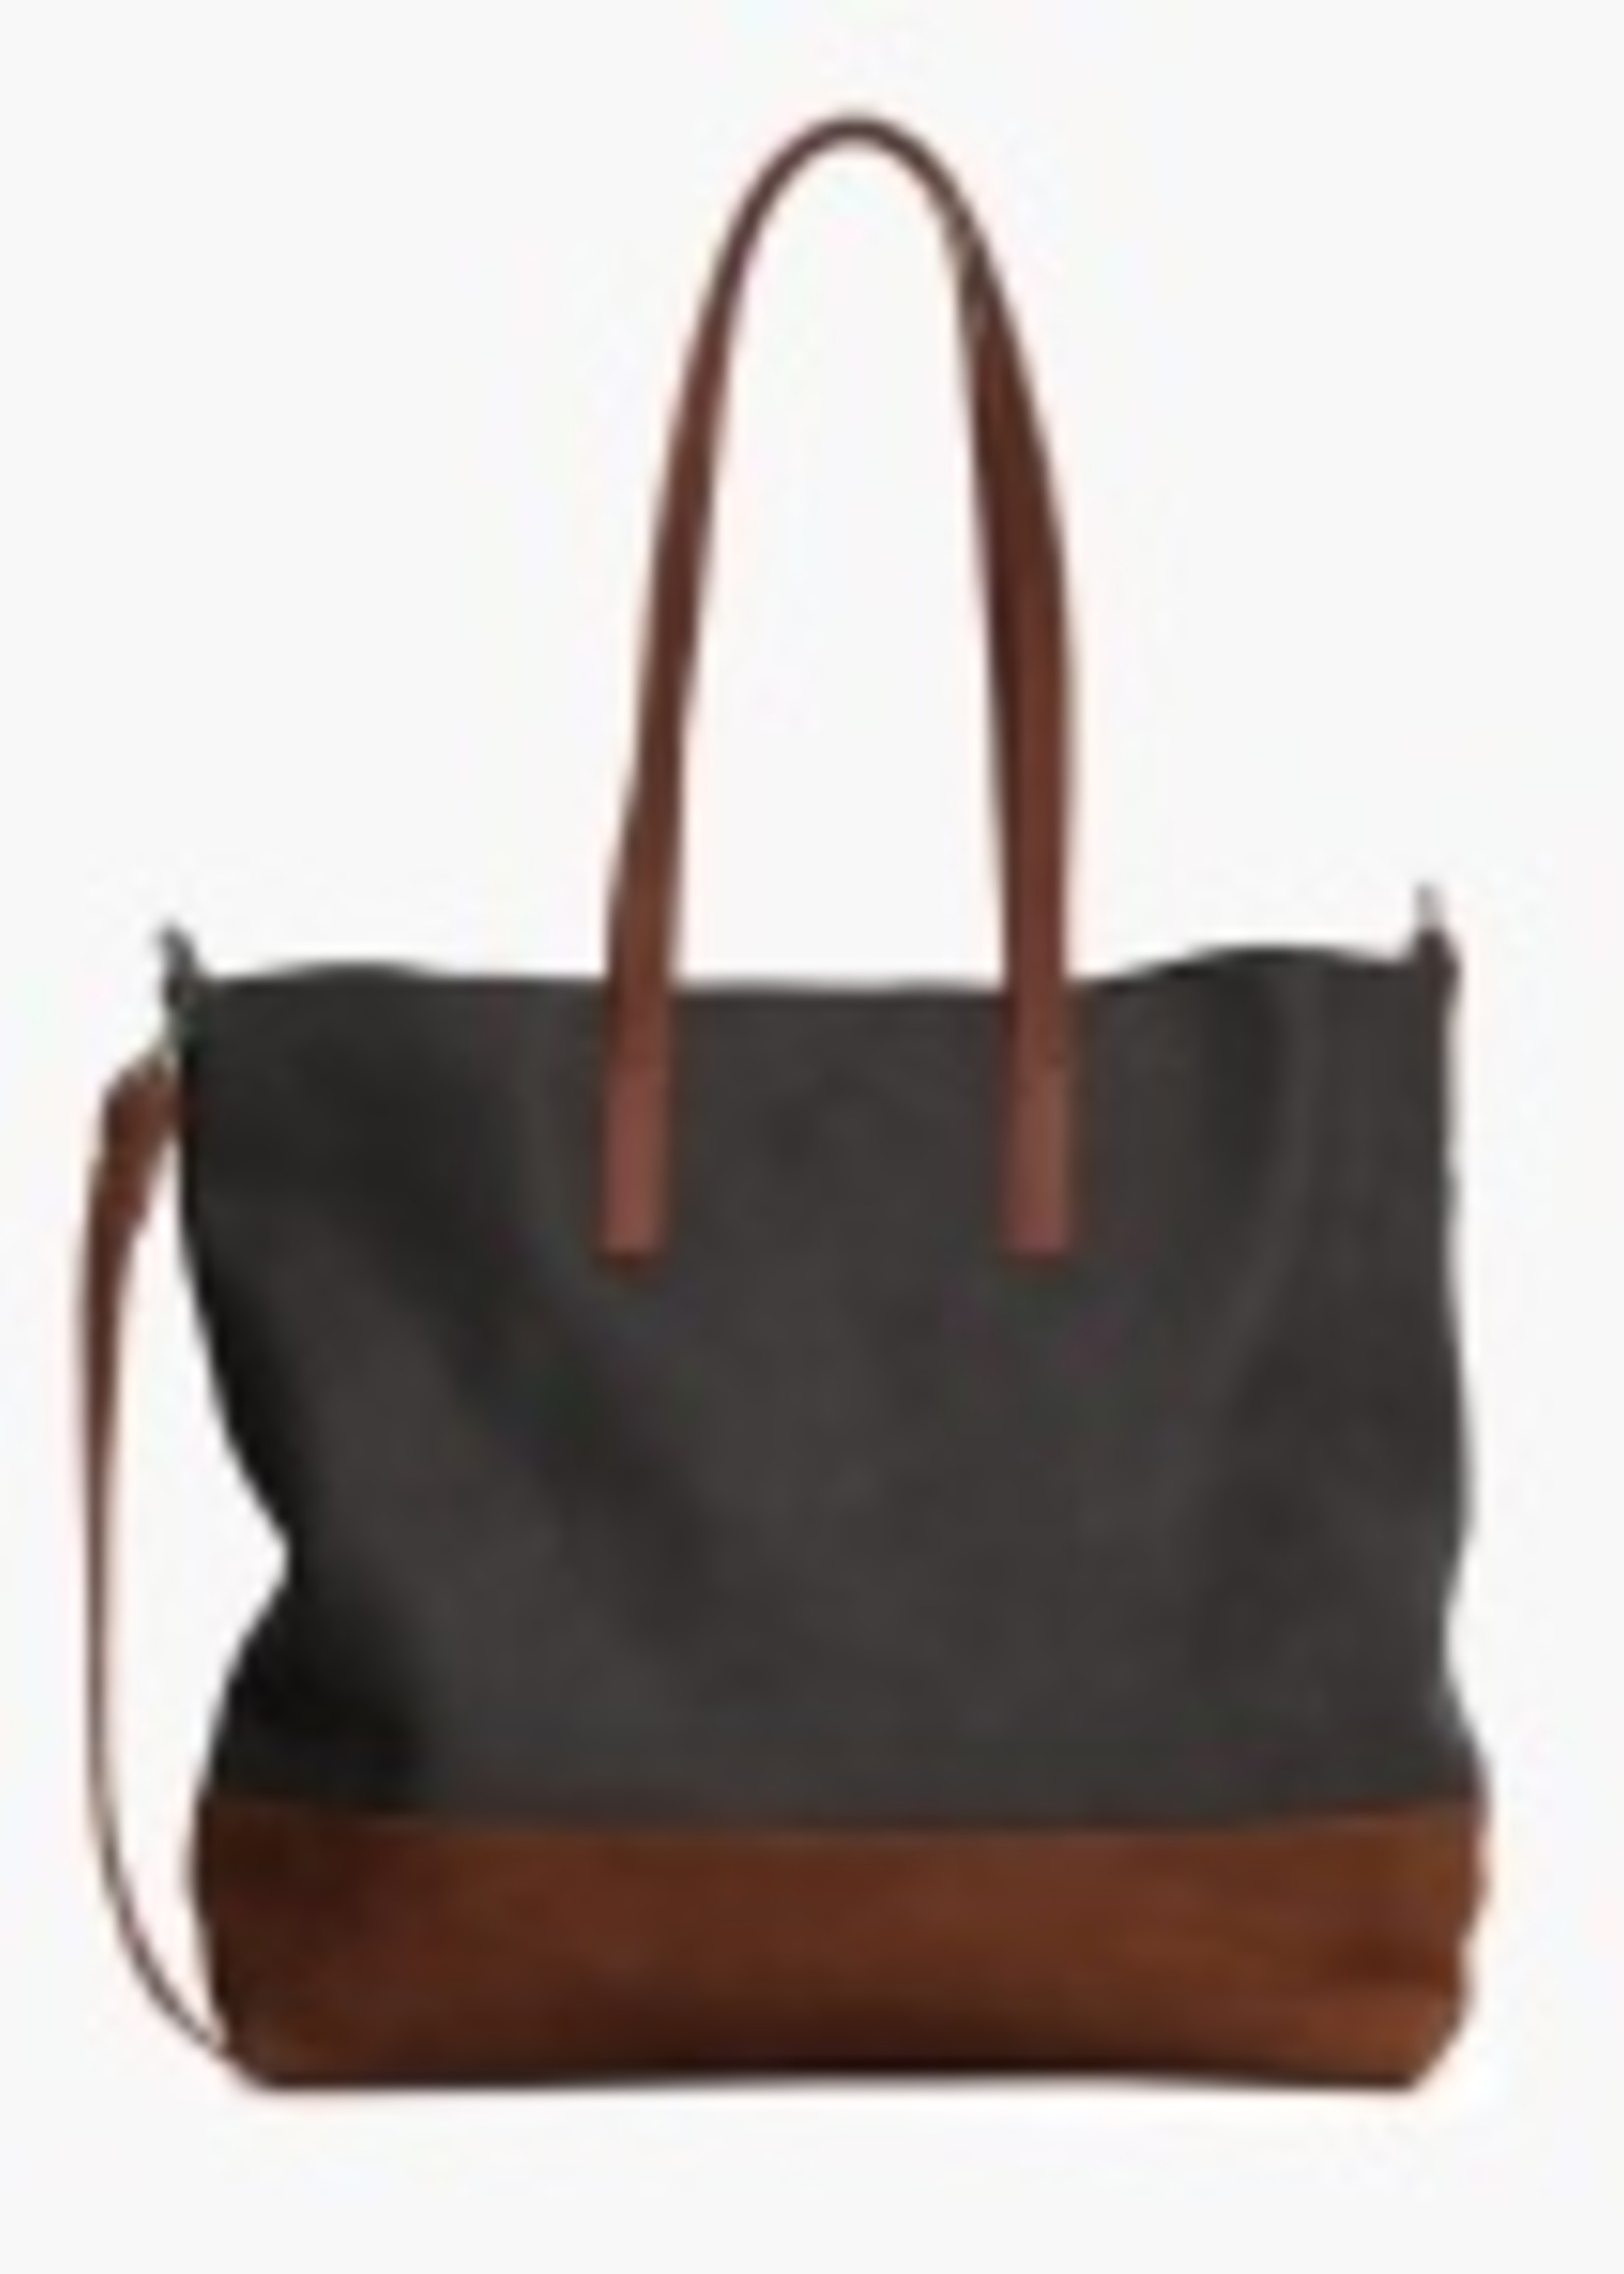 Able Leather Abera Leather Crossbody Tote Bk/Whiskey